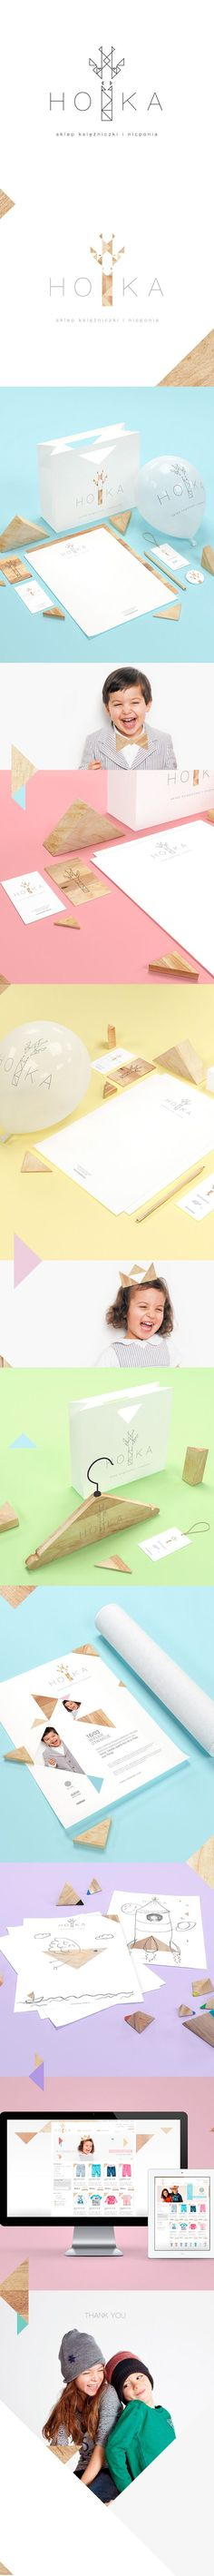 HOKA clothes for children by Joanna Namyślak, via Behance identity, packaging, branding PD Logo Design, Web Design, Brand Identity Design, Graphic Design Branding, Logo Branding, Creative Design, Branding Agency, Brand Design, Corporate Design